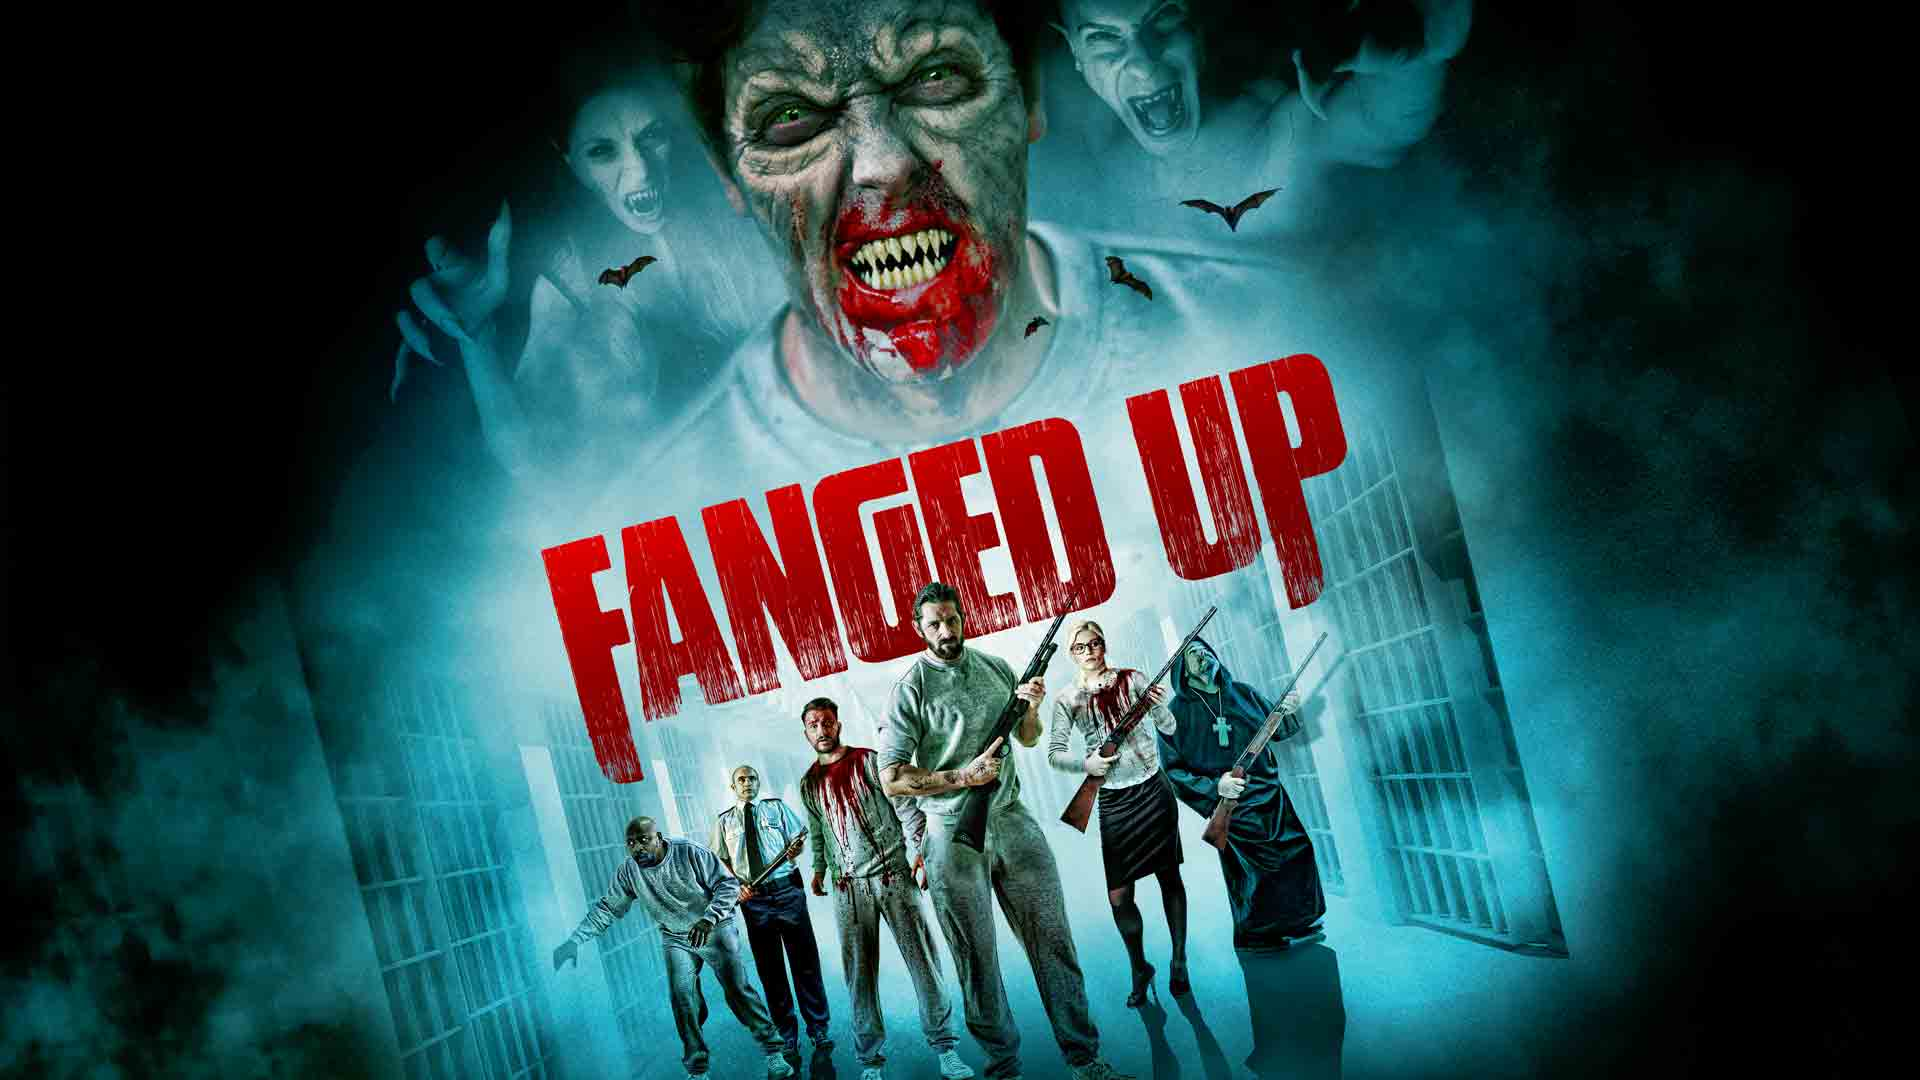 Fanged Up